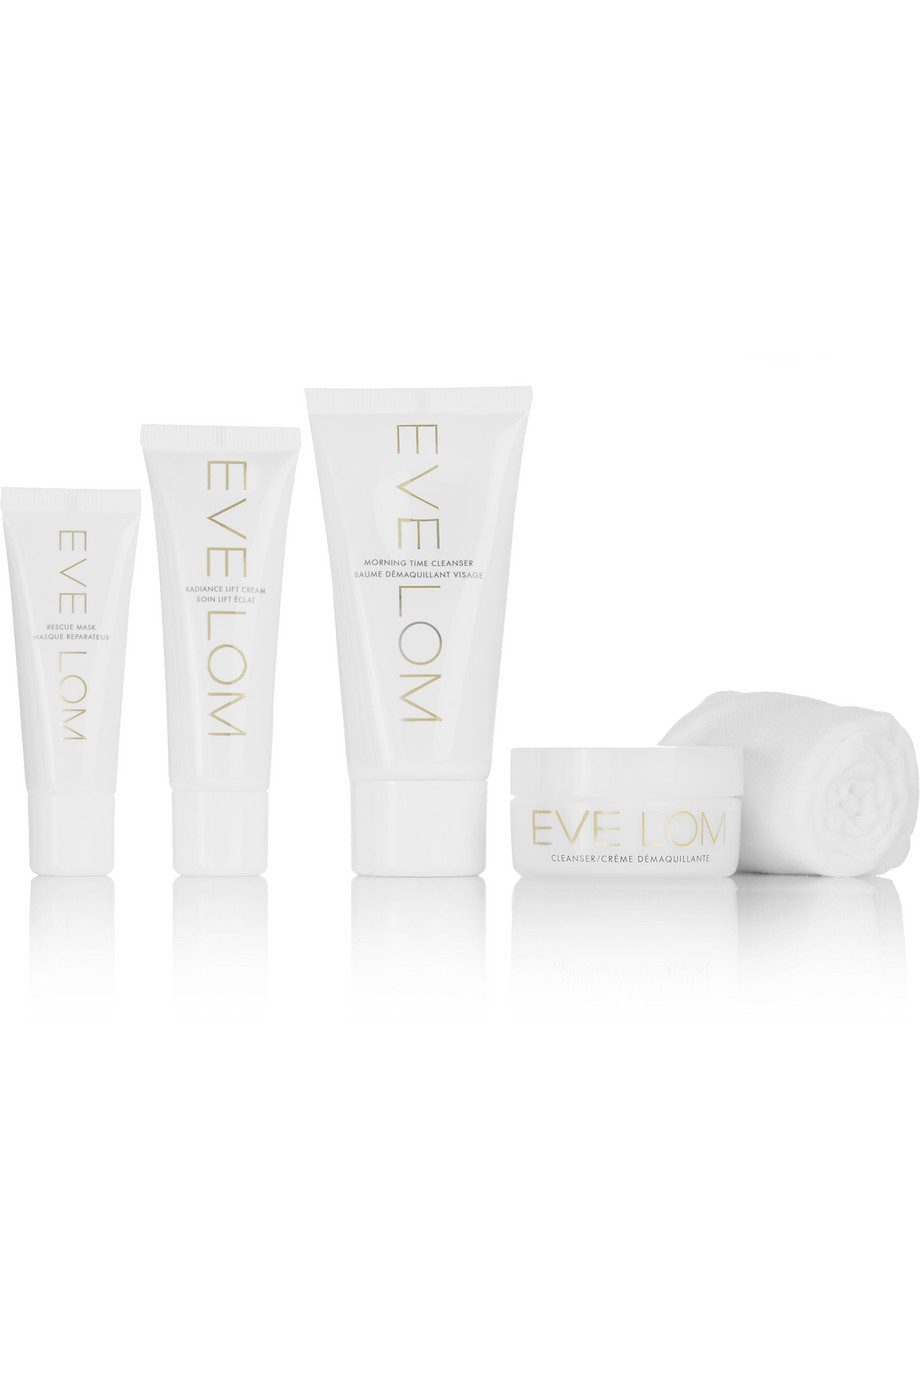 Travel Essentials Set, by Eve Lom